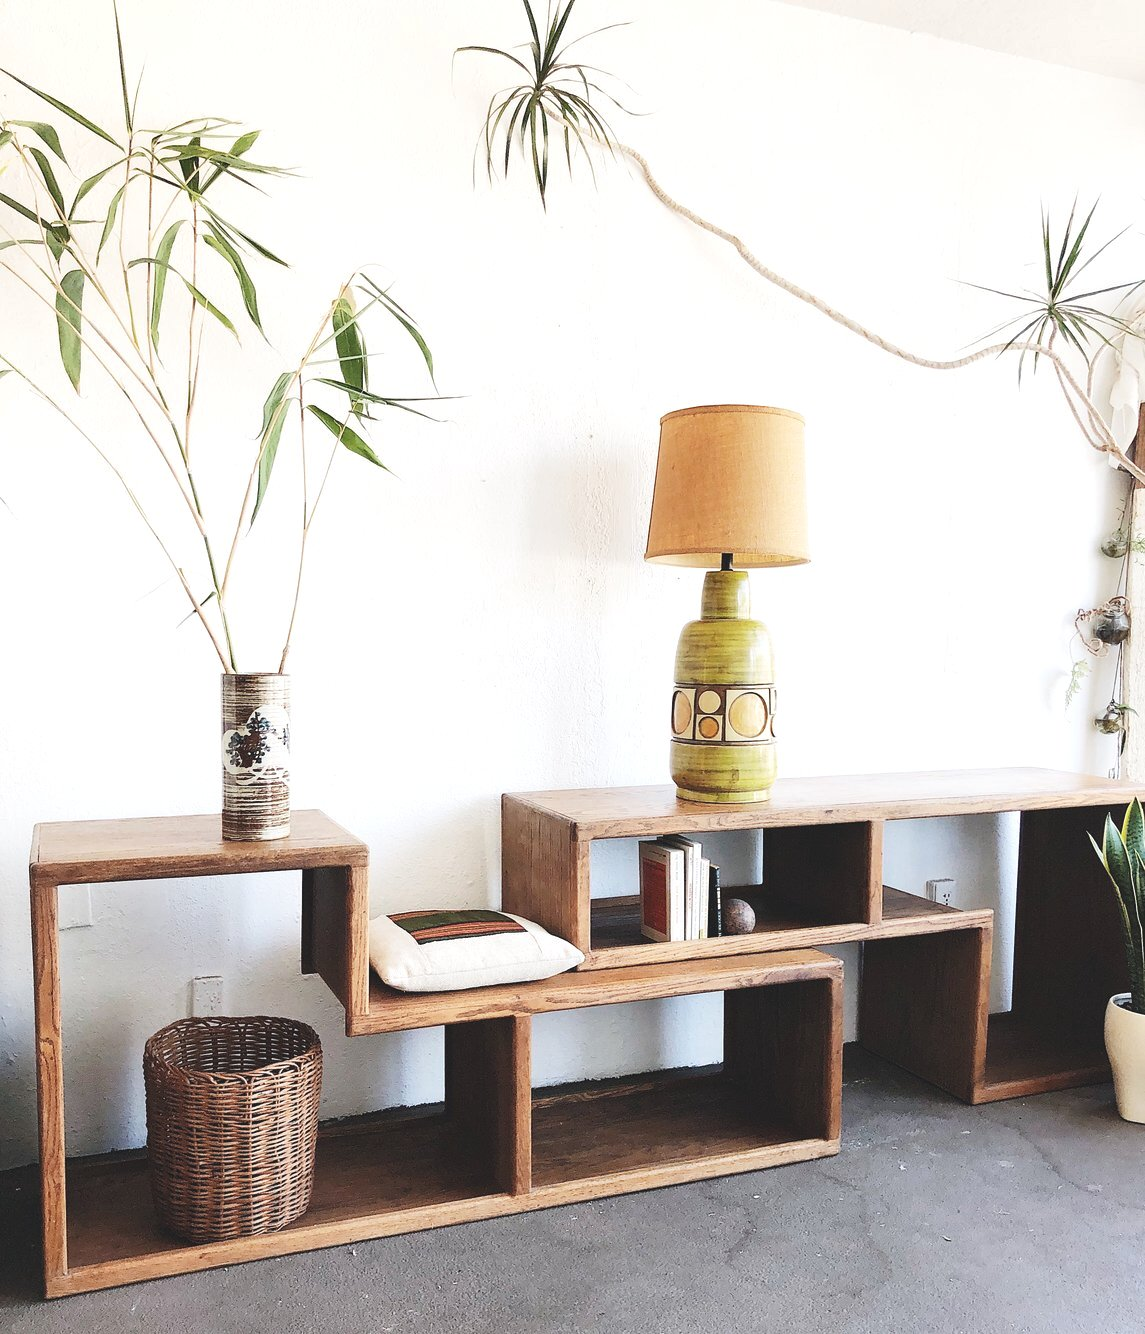 Vintage Oak Modular Shelf